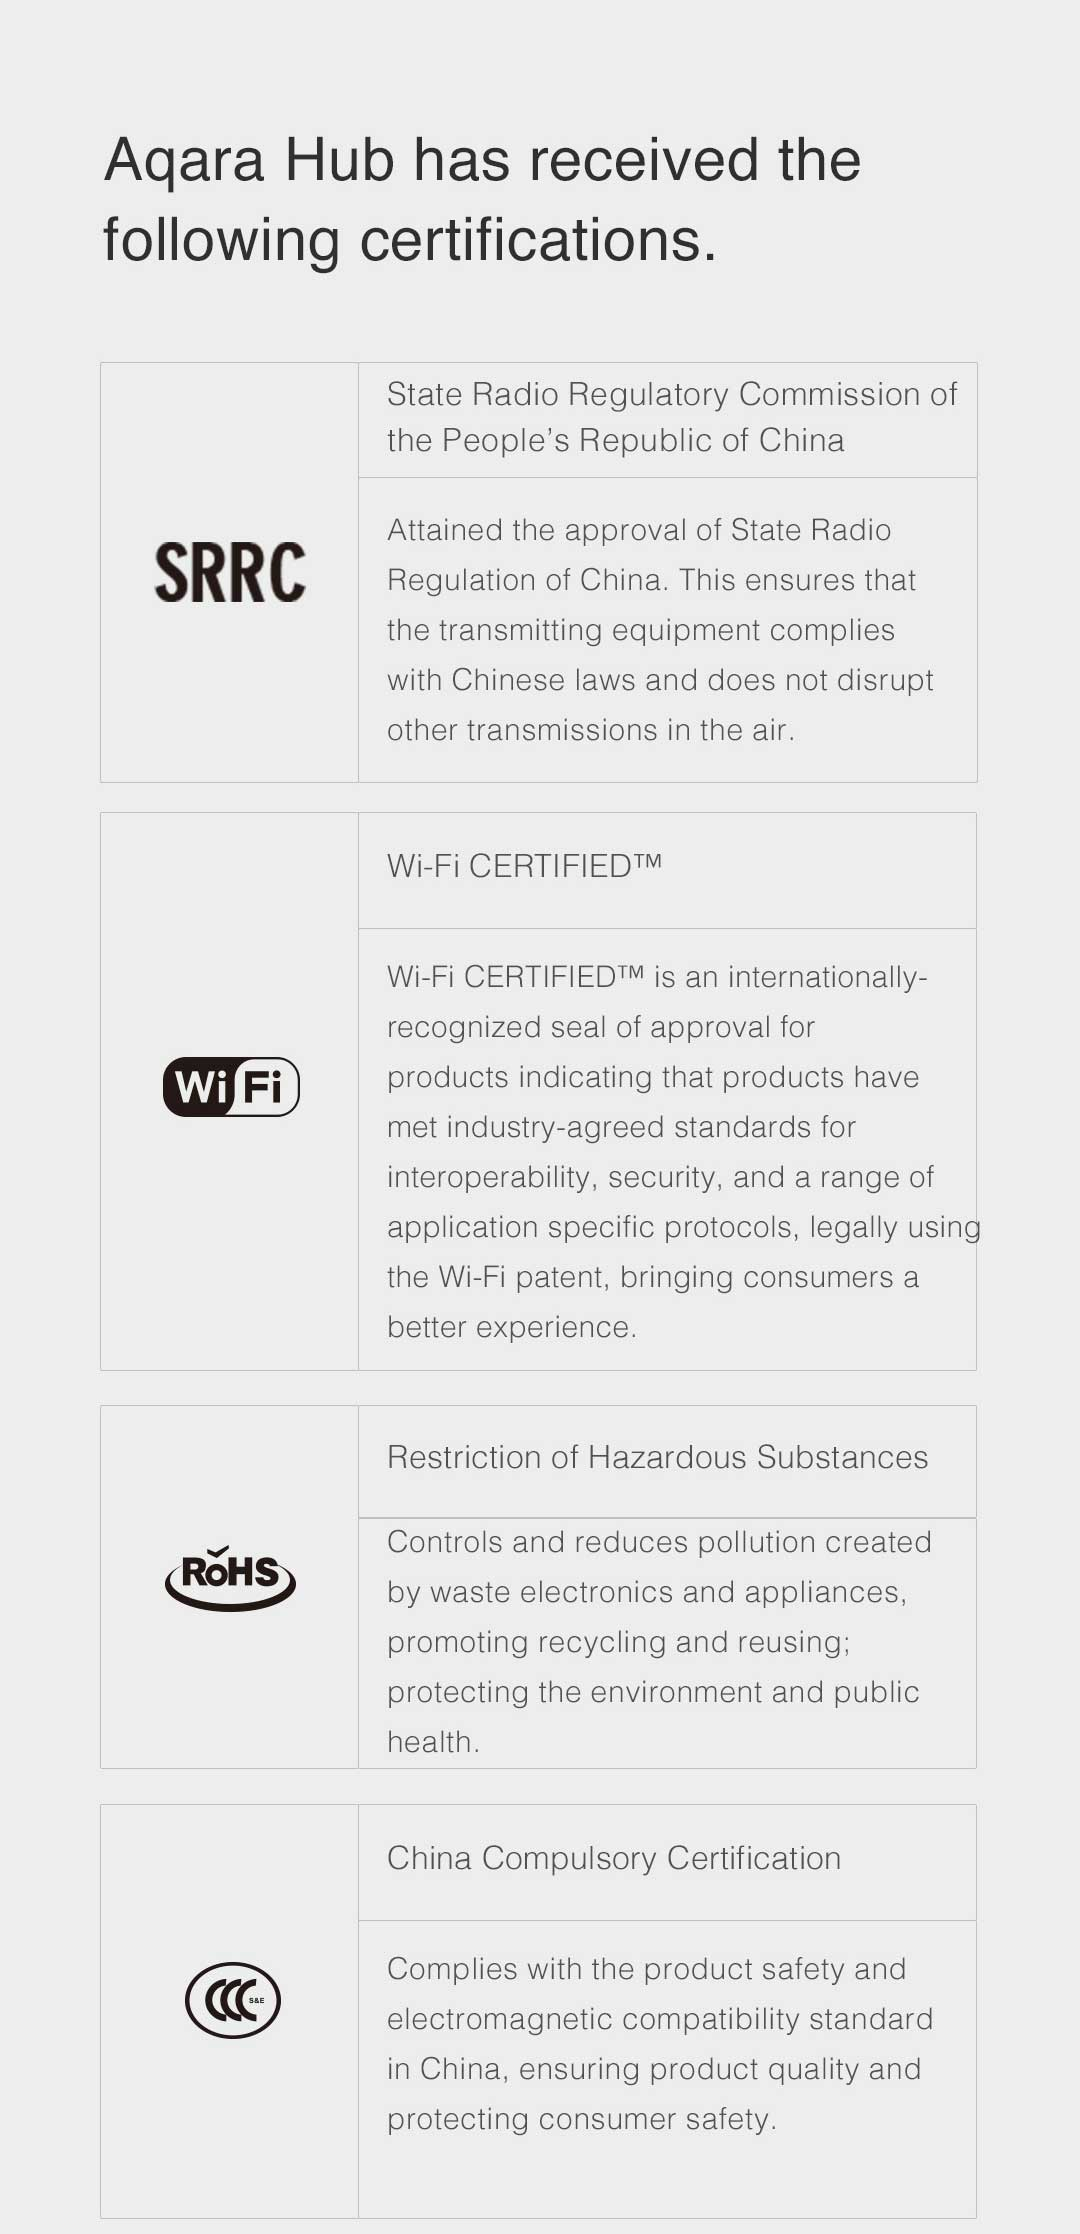 Aqara Hub Has Received the Following Certifications 1